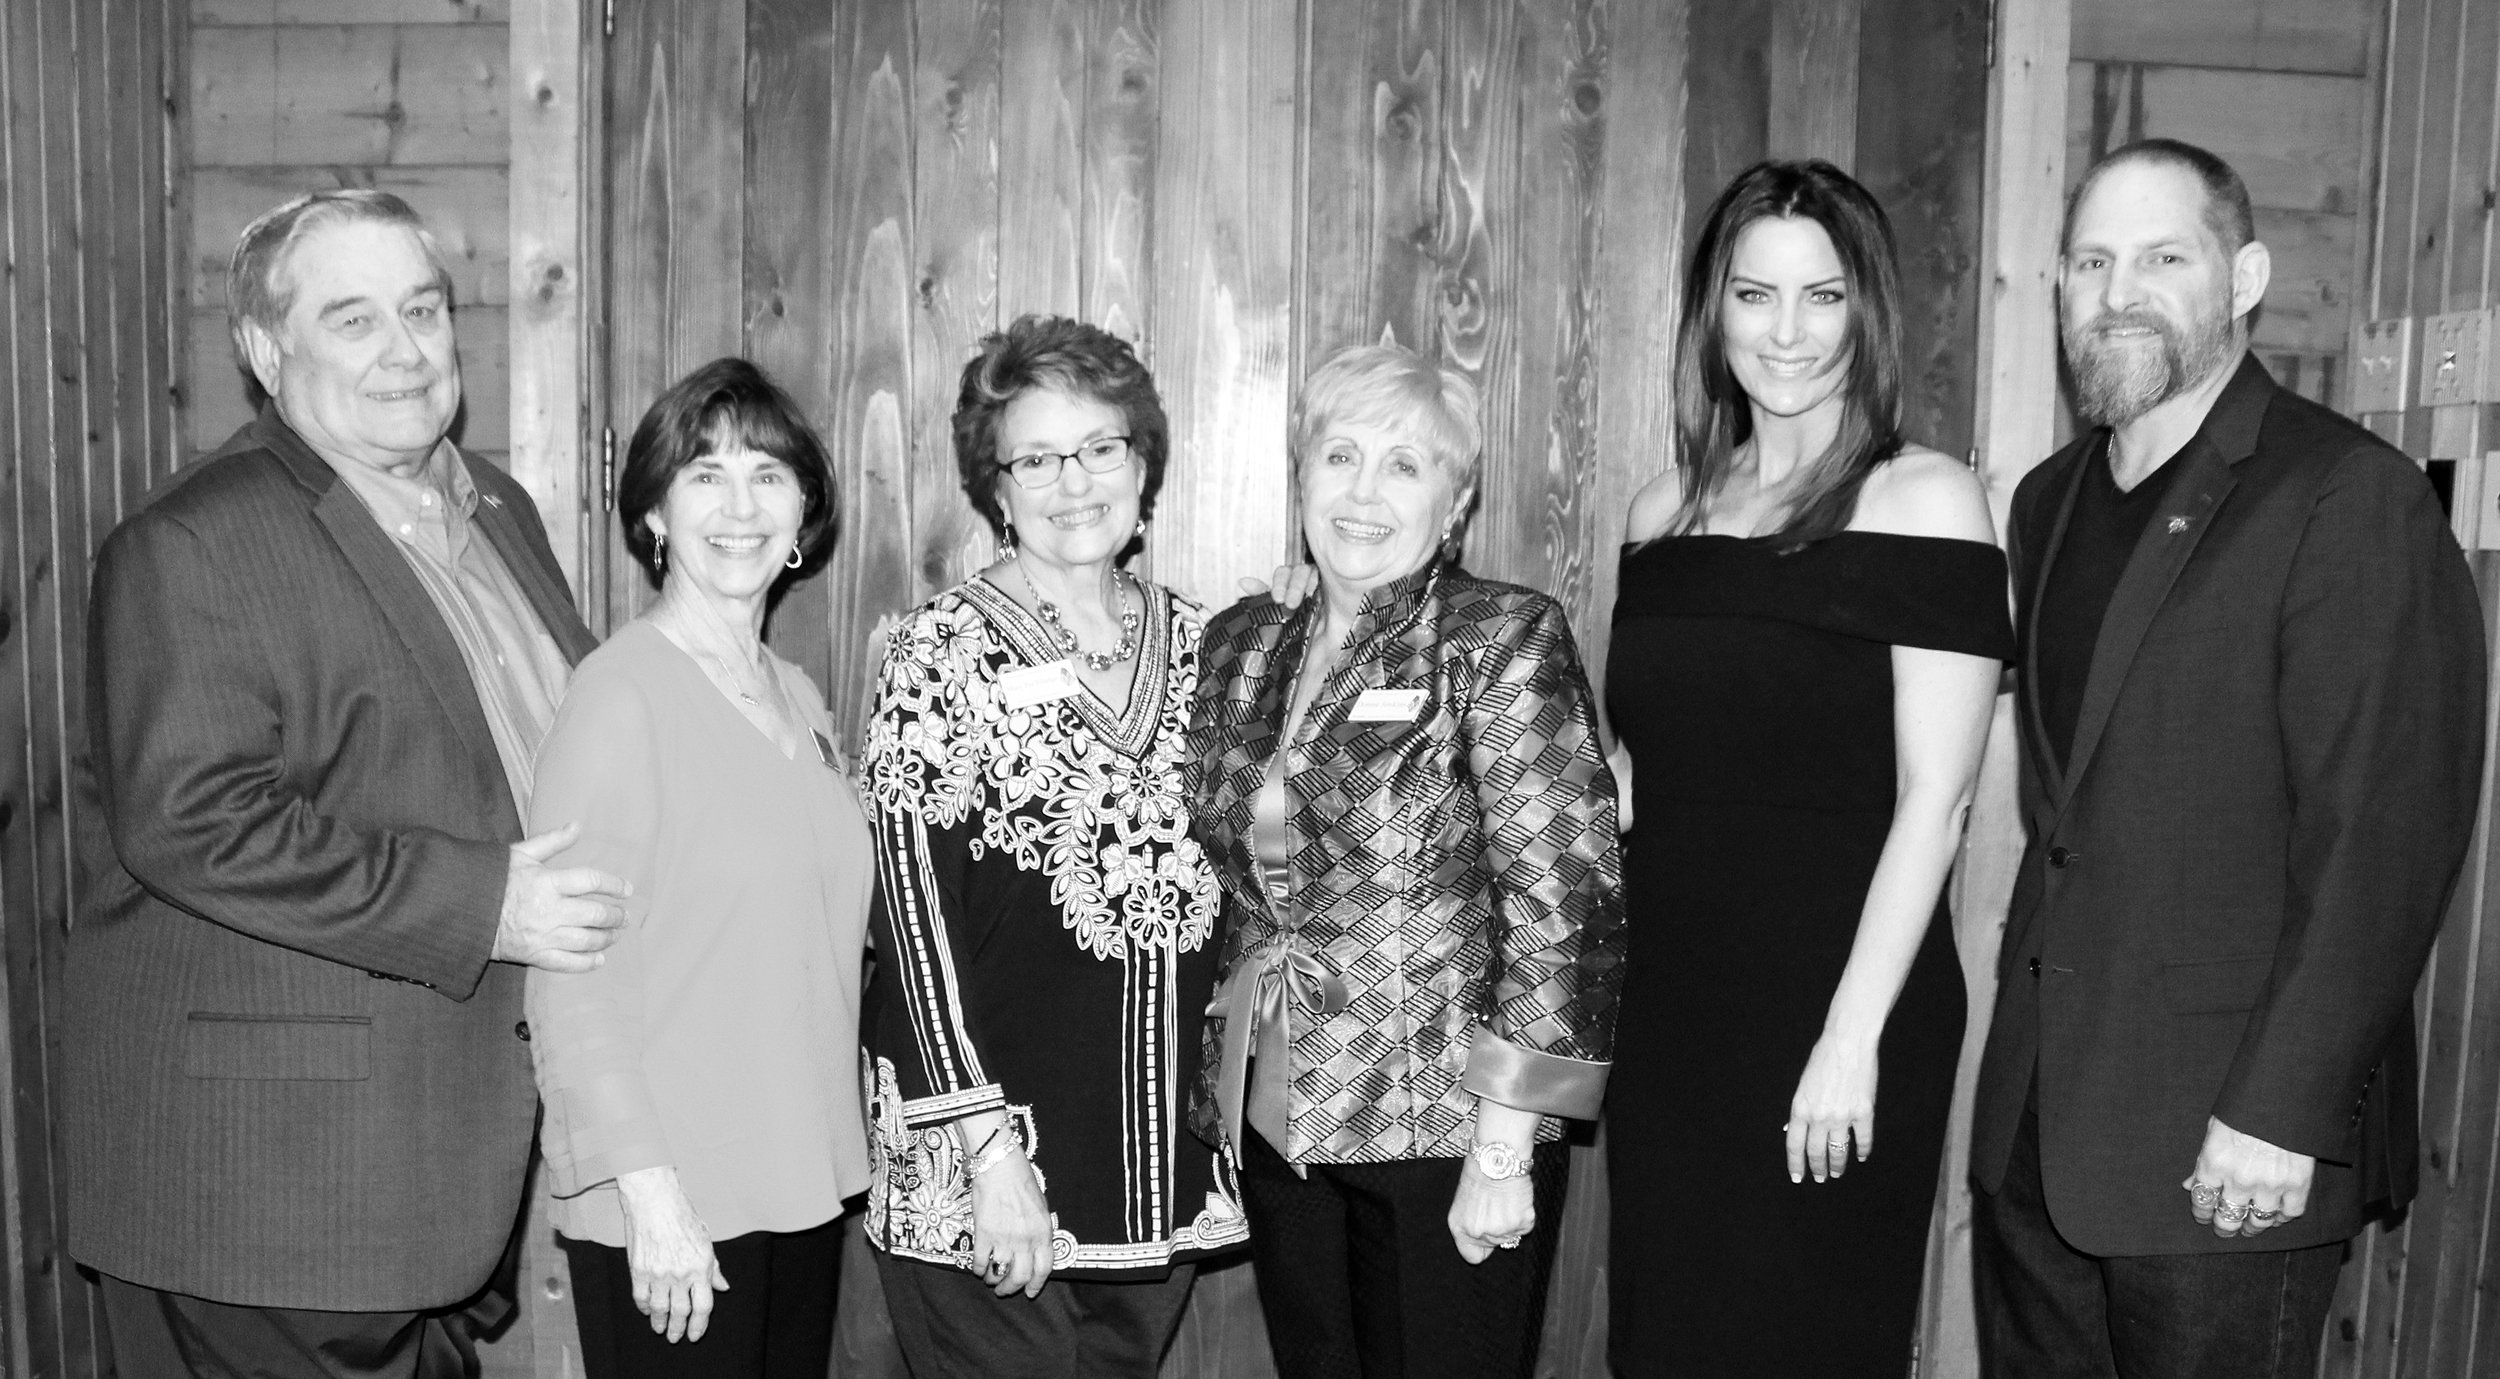 (From left) Lou and Sue Diamond, Mary Pat Elledge, Donna Jenkins, Natalie Woods and Scott Phillips.